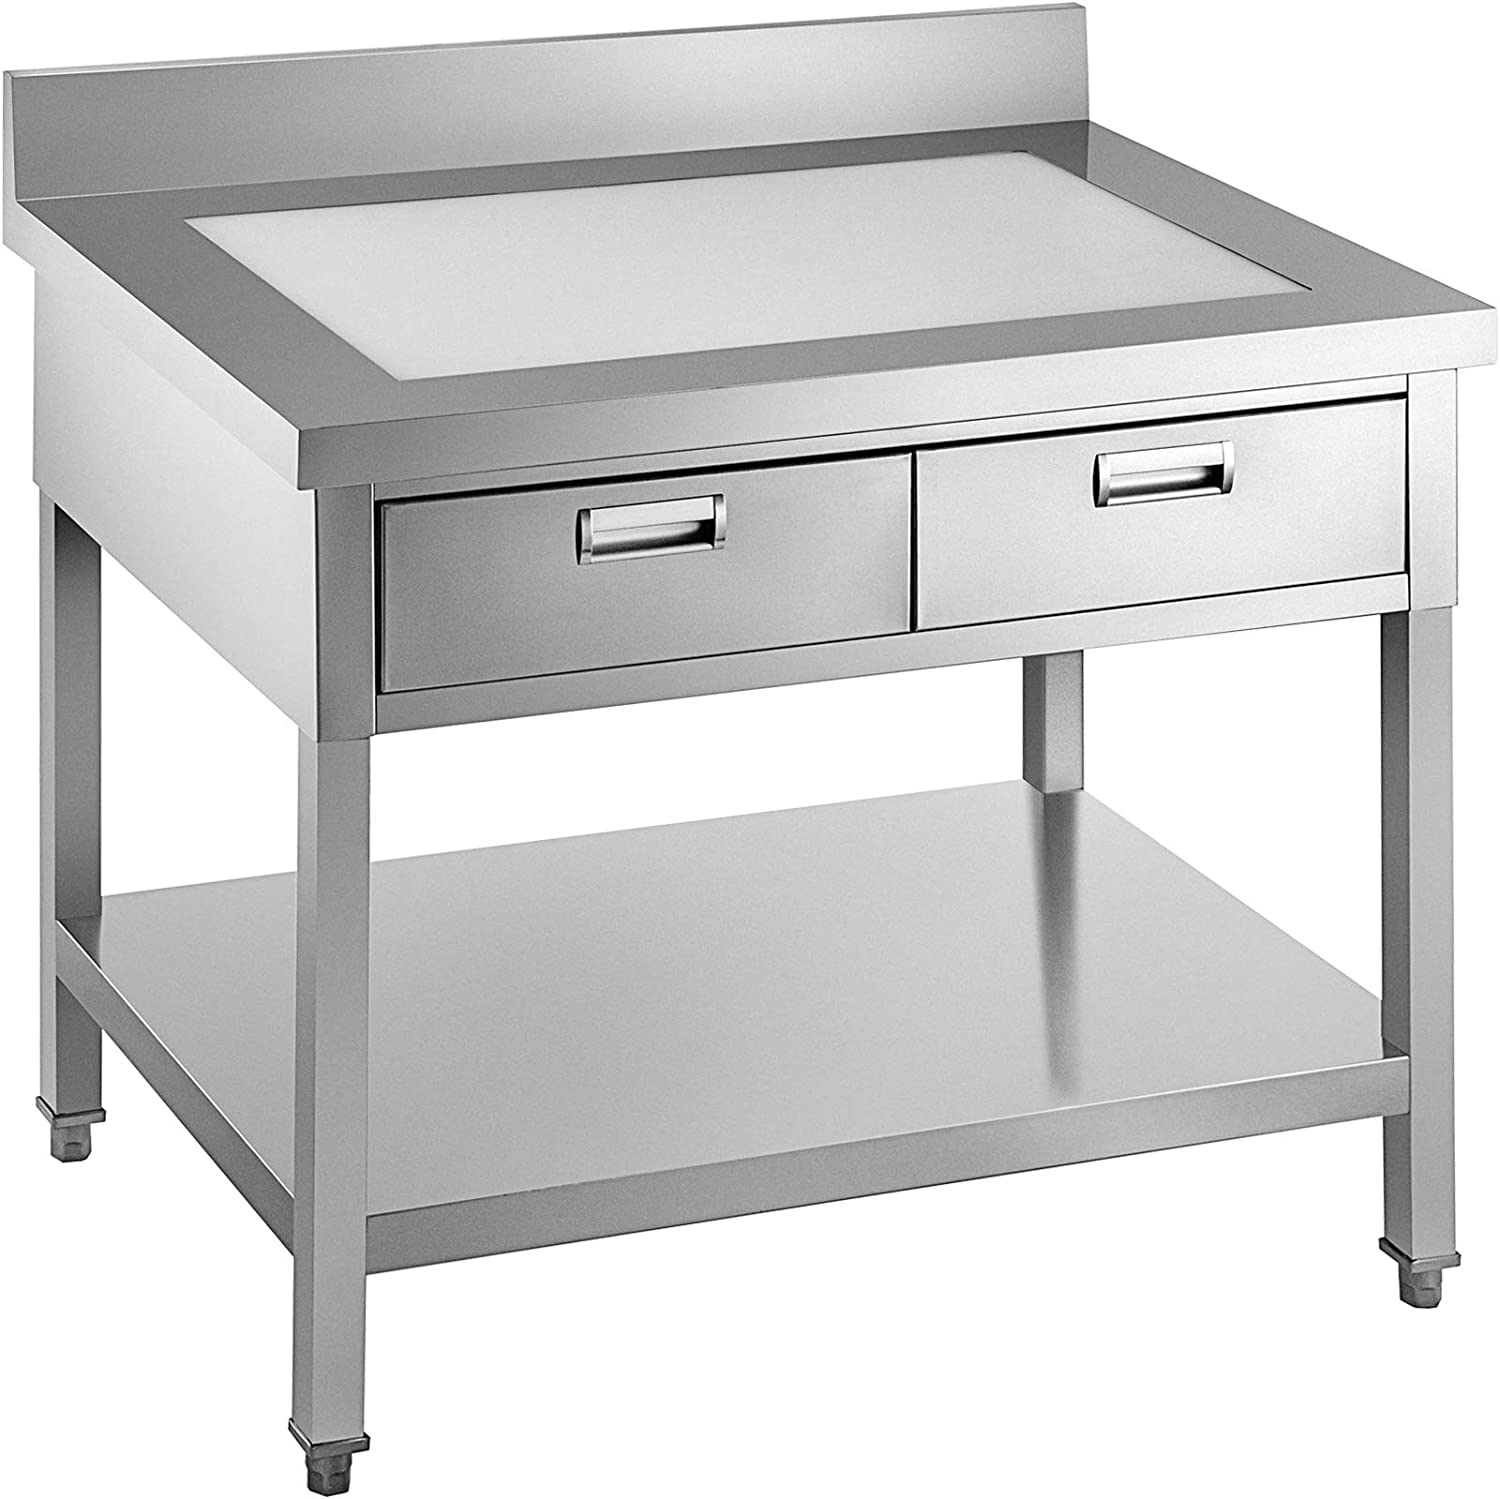 VEVOR Commercial Worktable Workstation 24 x 28 In Commercial Food Prep Worktable with 2 Drawers, Undershelf and Backsplash, 992 lbs Load Stainless Steel Kitchen Island for Restaurant, Home and Hotel